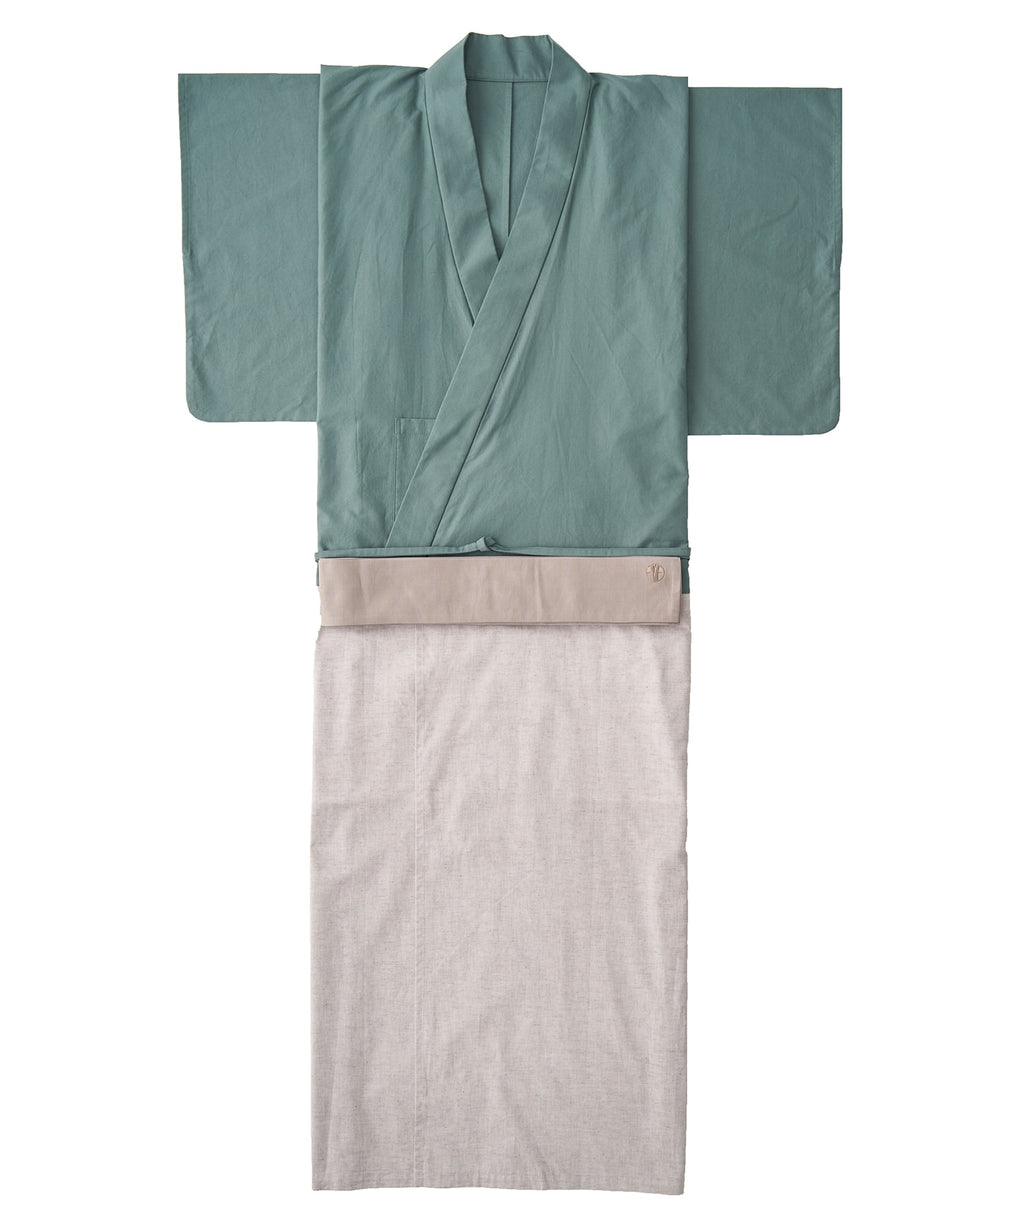 WAROBE / BI-COLOR YUKATA / GREEN x BEIGE